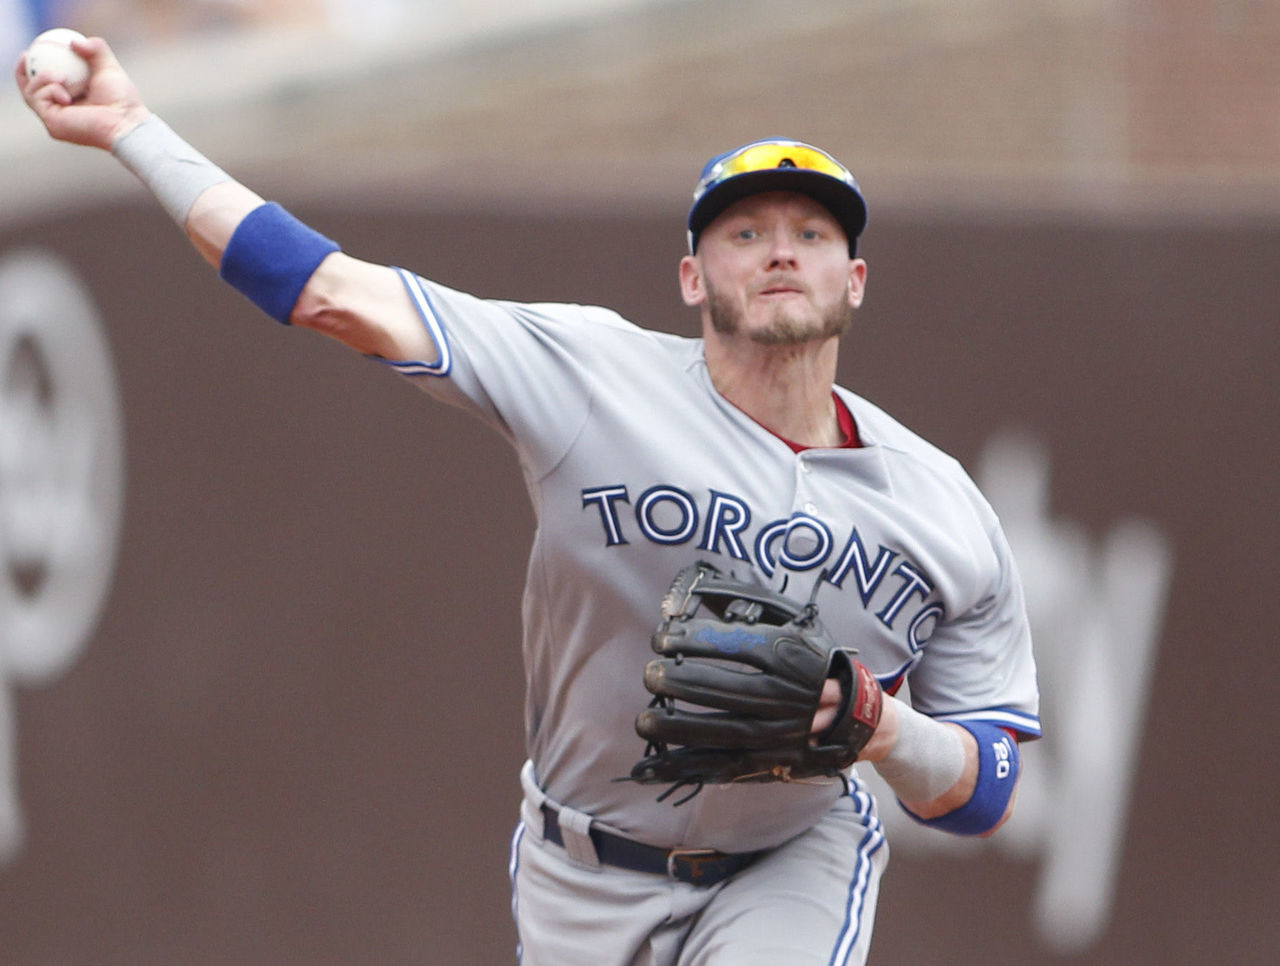 Cropped 2017 08 20t203736z 1473773499 nocid rtrmadp 3 mlb toronto blue jays at chicago cubs